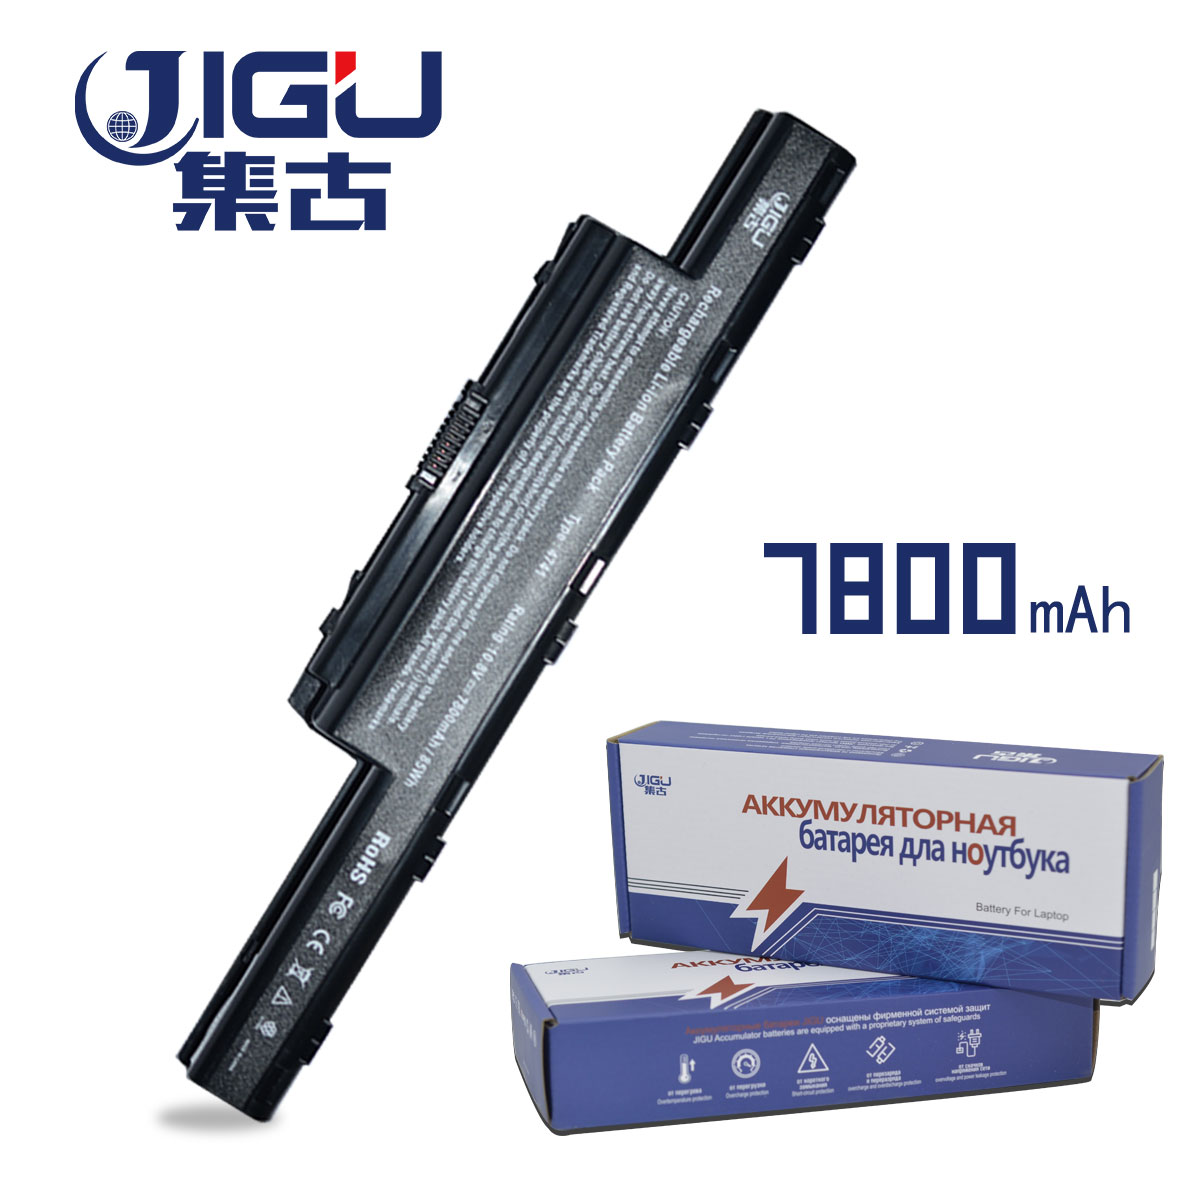 JIGU 7750g NEW Laptop Battery For Acer Aspire V3 V3-471G V3-551G V3-571G V3-771G E1 E1-421 E1-431 E1-471 E1-531 E1-571 Series bluetooth link car kit with aux in interface & usb charger for vw bora caddy eos fox lupo golf golf plus jetta passat polo